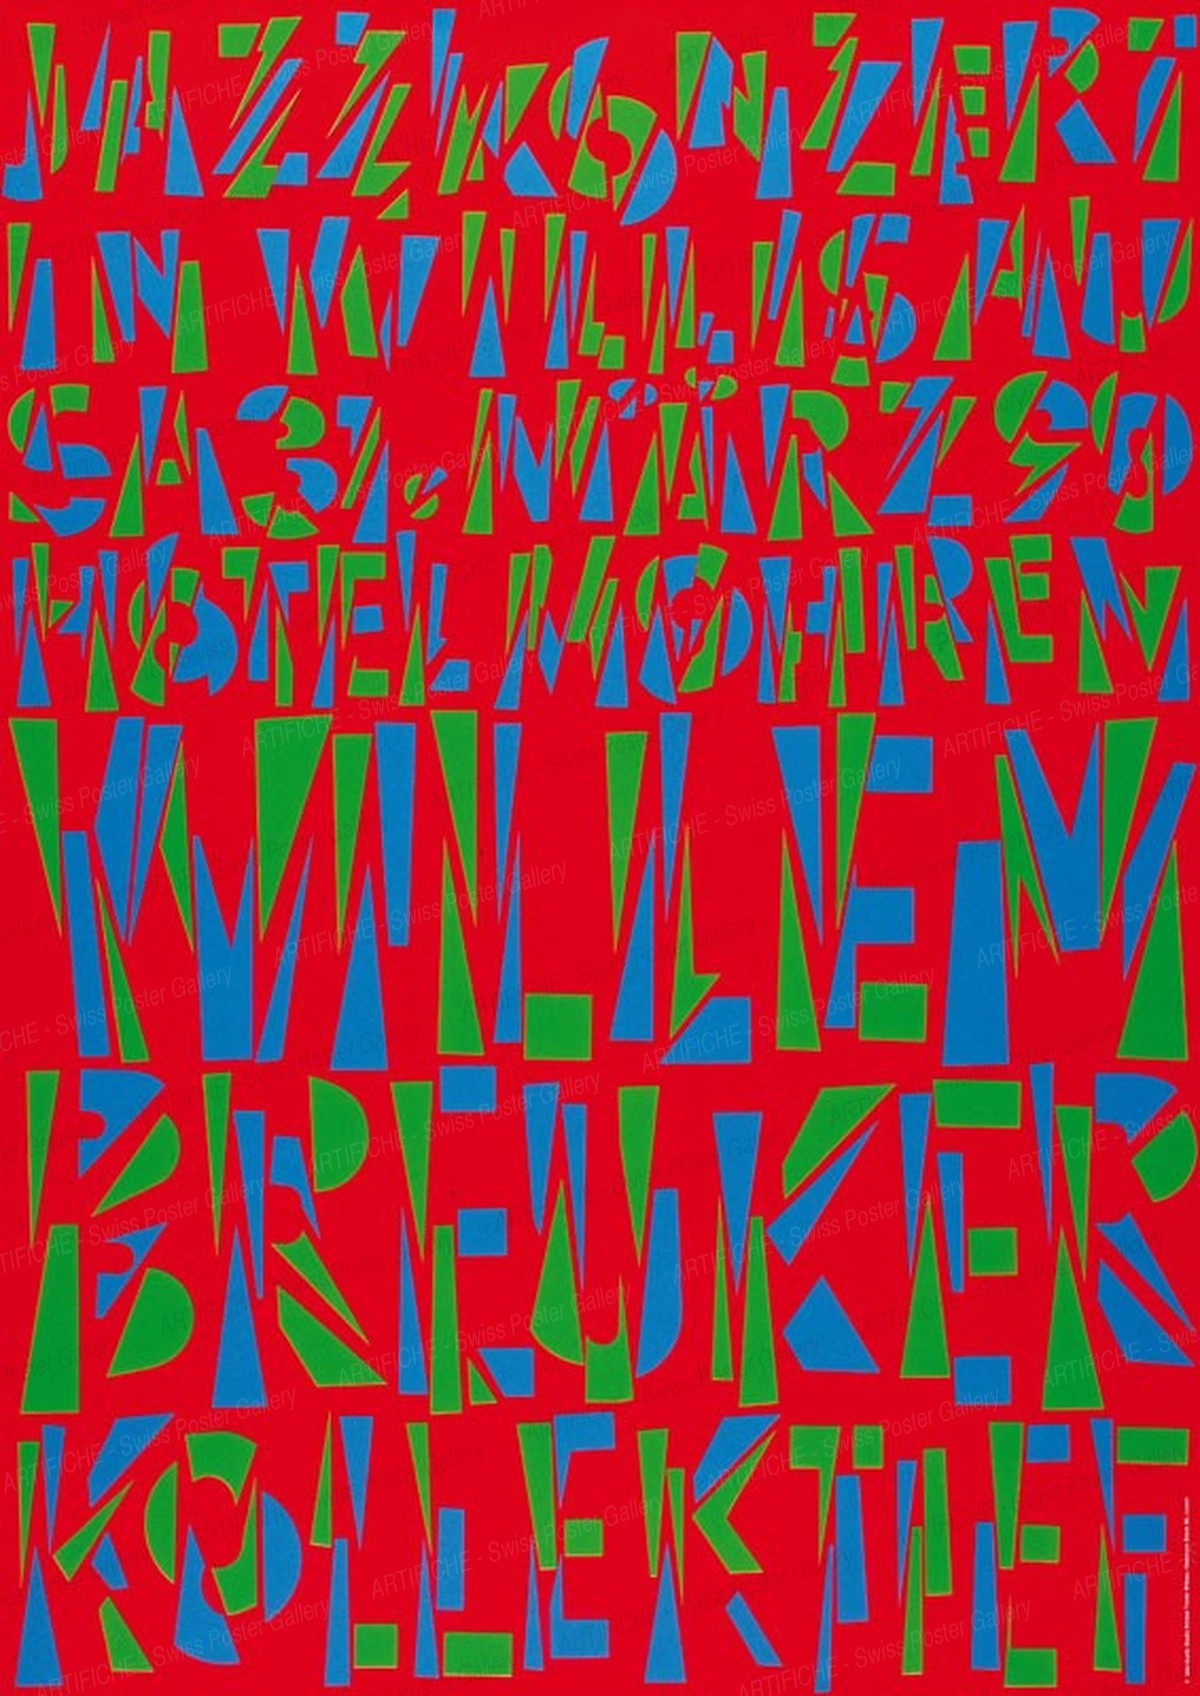 Jazz Willisau – Willem Breuker Kollektief, Niklaus Troxler